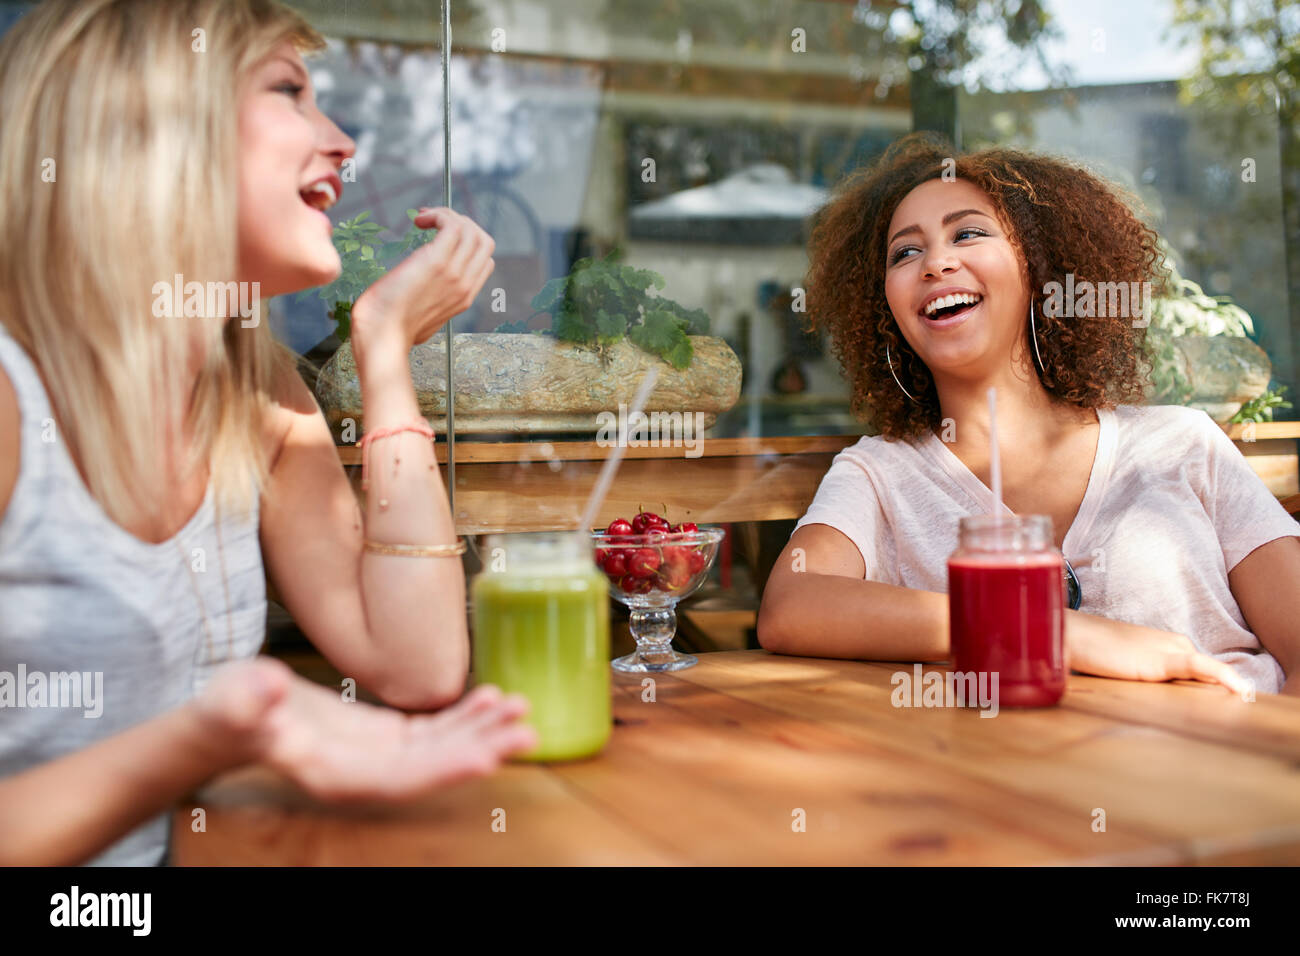 Two women gossiping and smiling at a restaurant. Young friends sitting at outdoors cafe having fun. Stock Photo